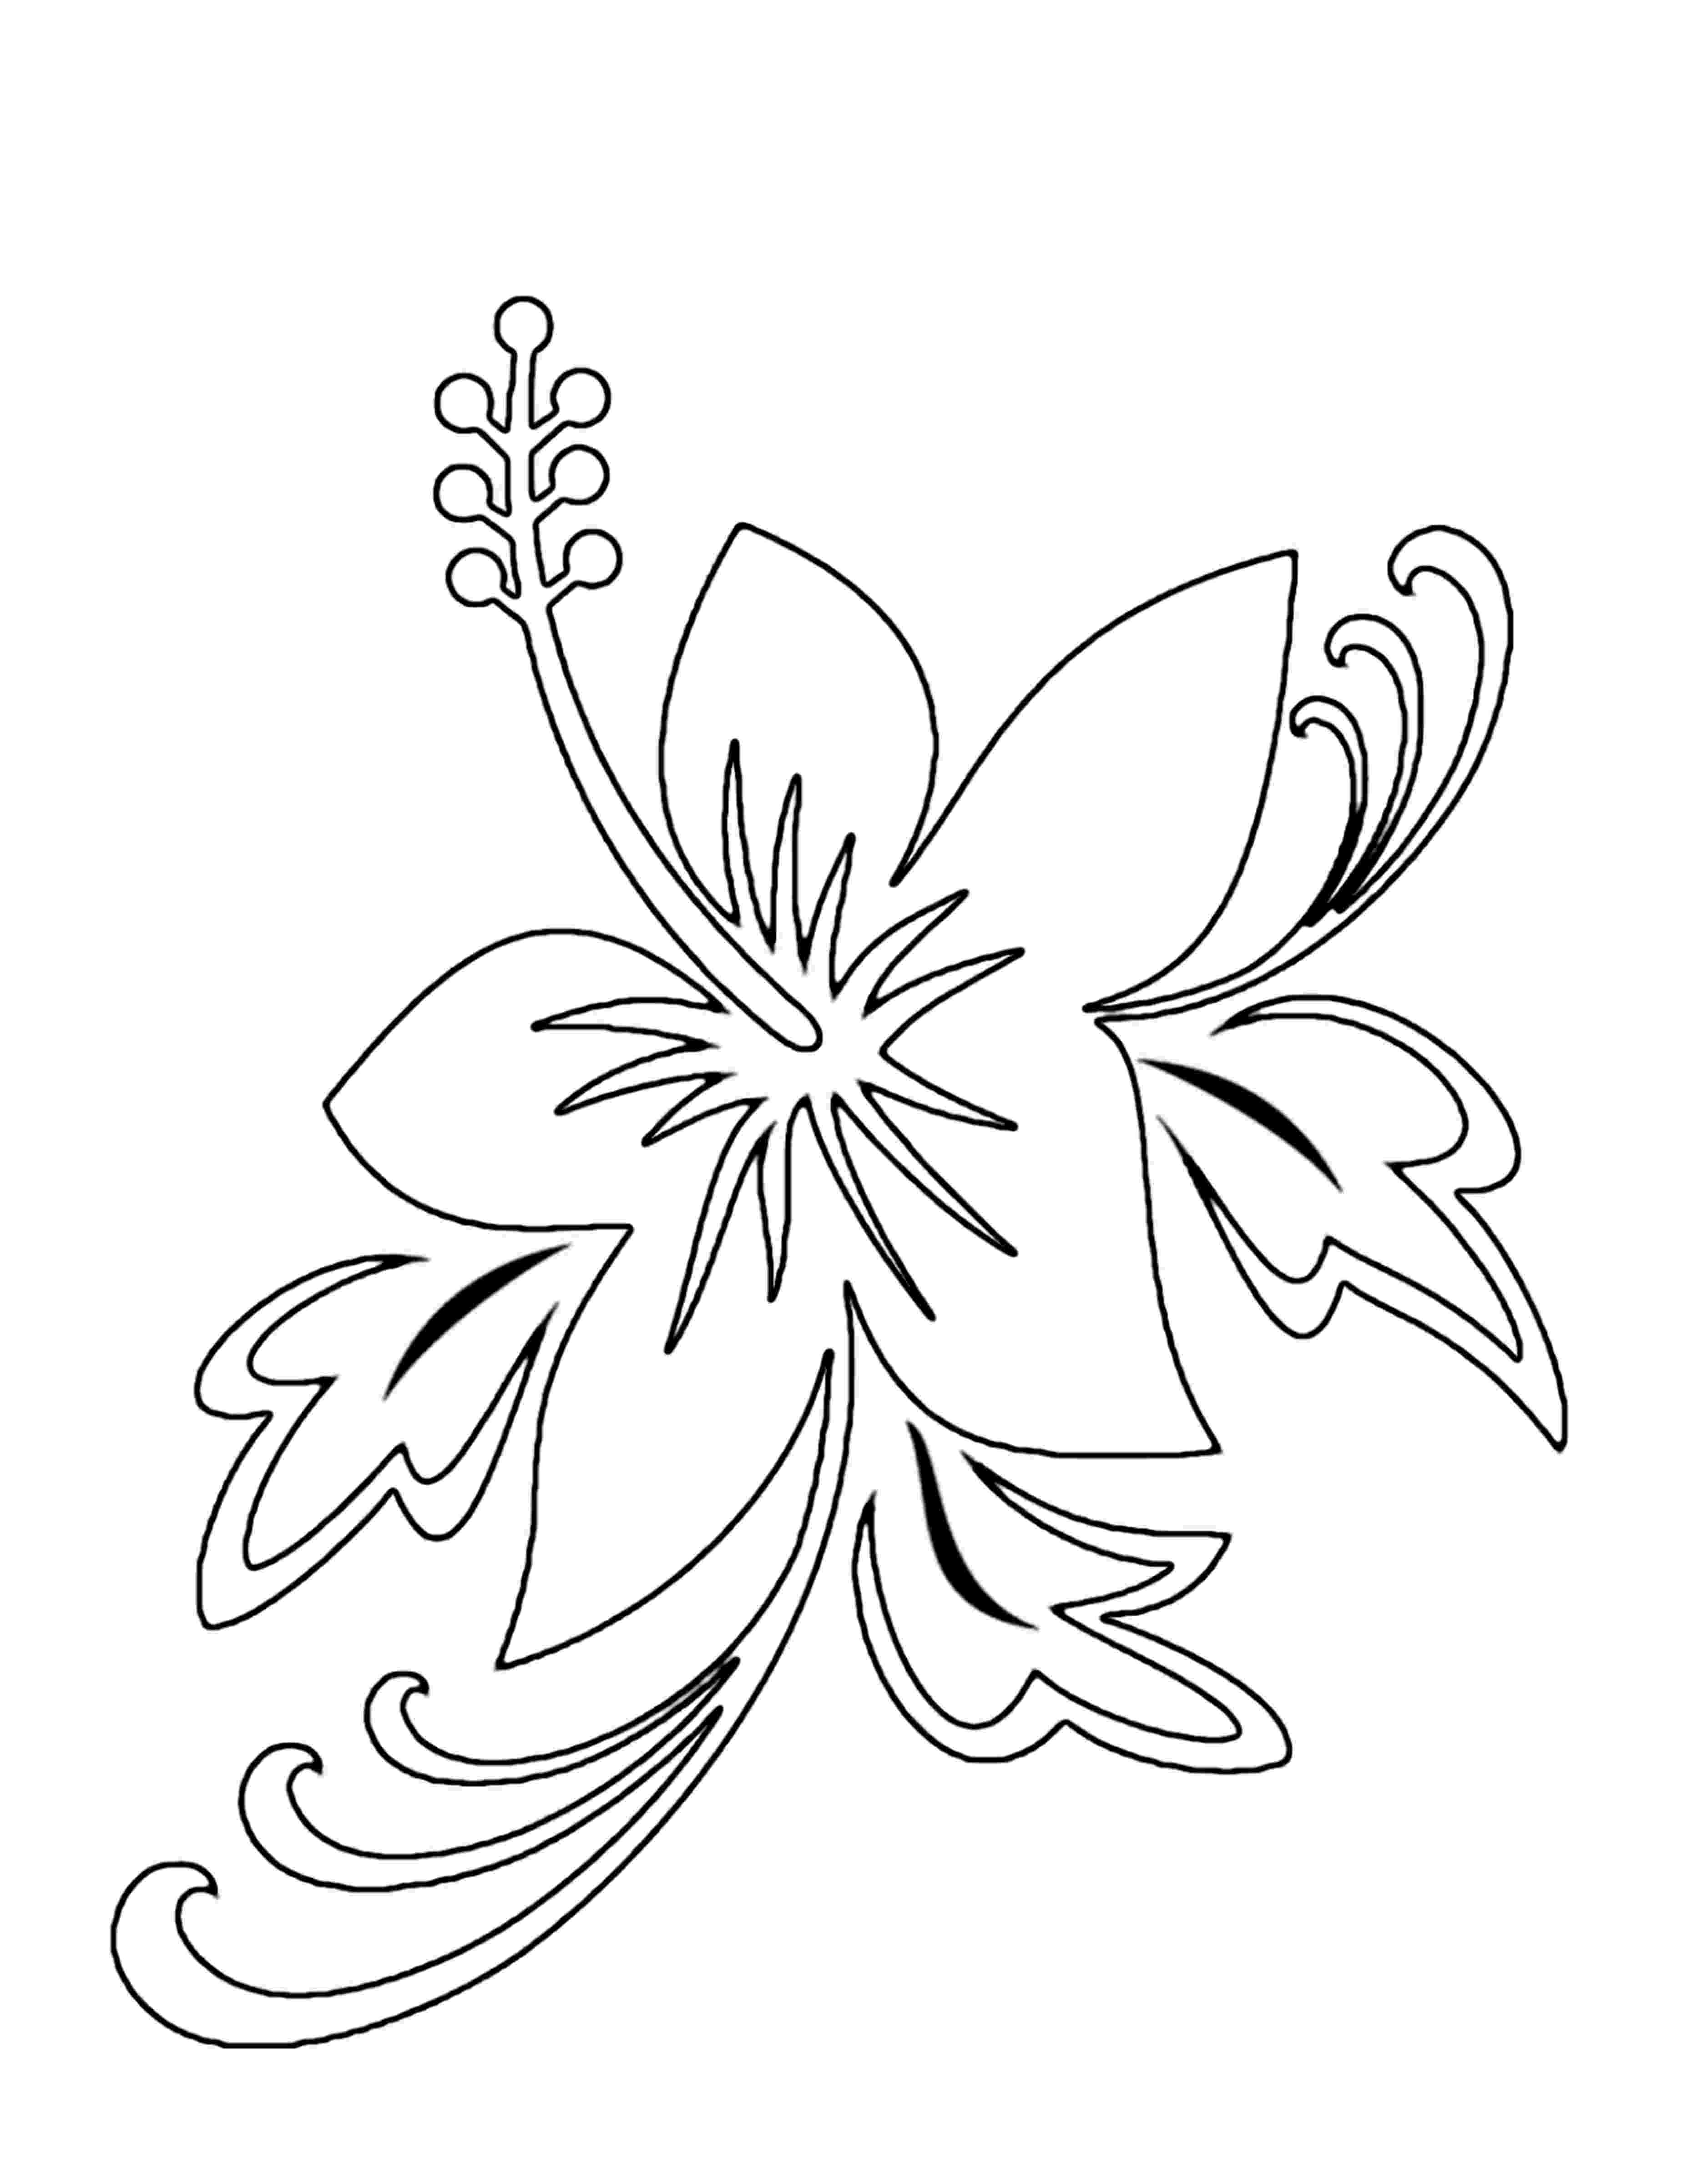 flowers printable coloring pages bouquet of flowers coloring pages for childrens printable printable coloring flowers pages